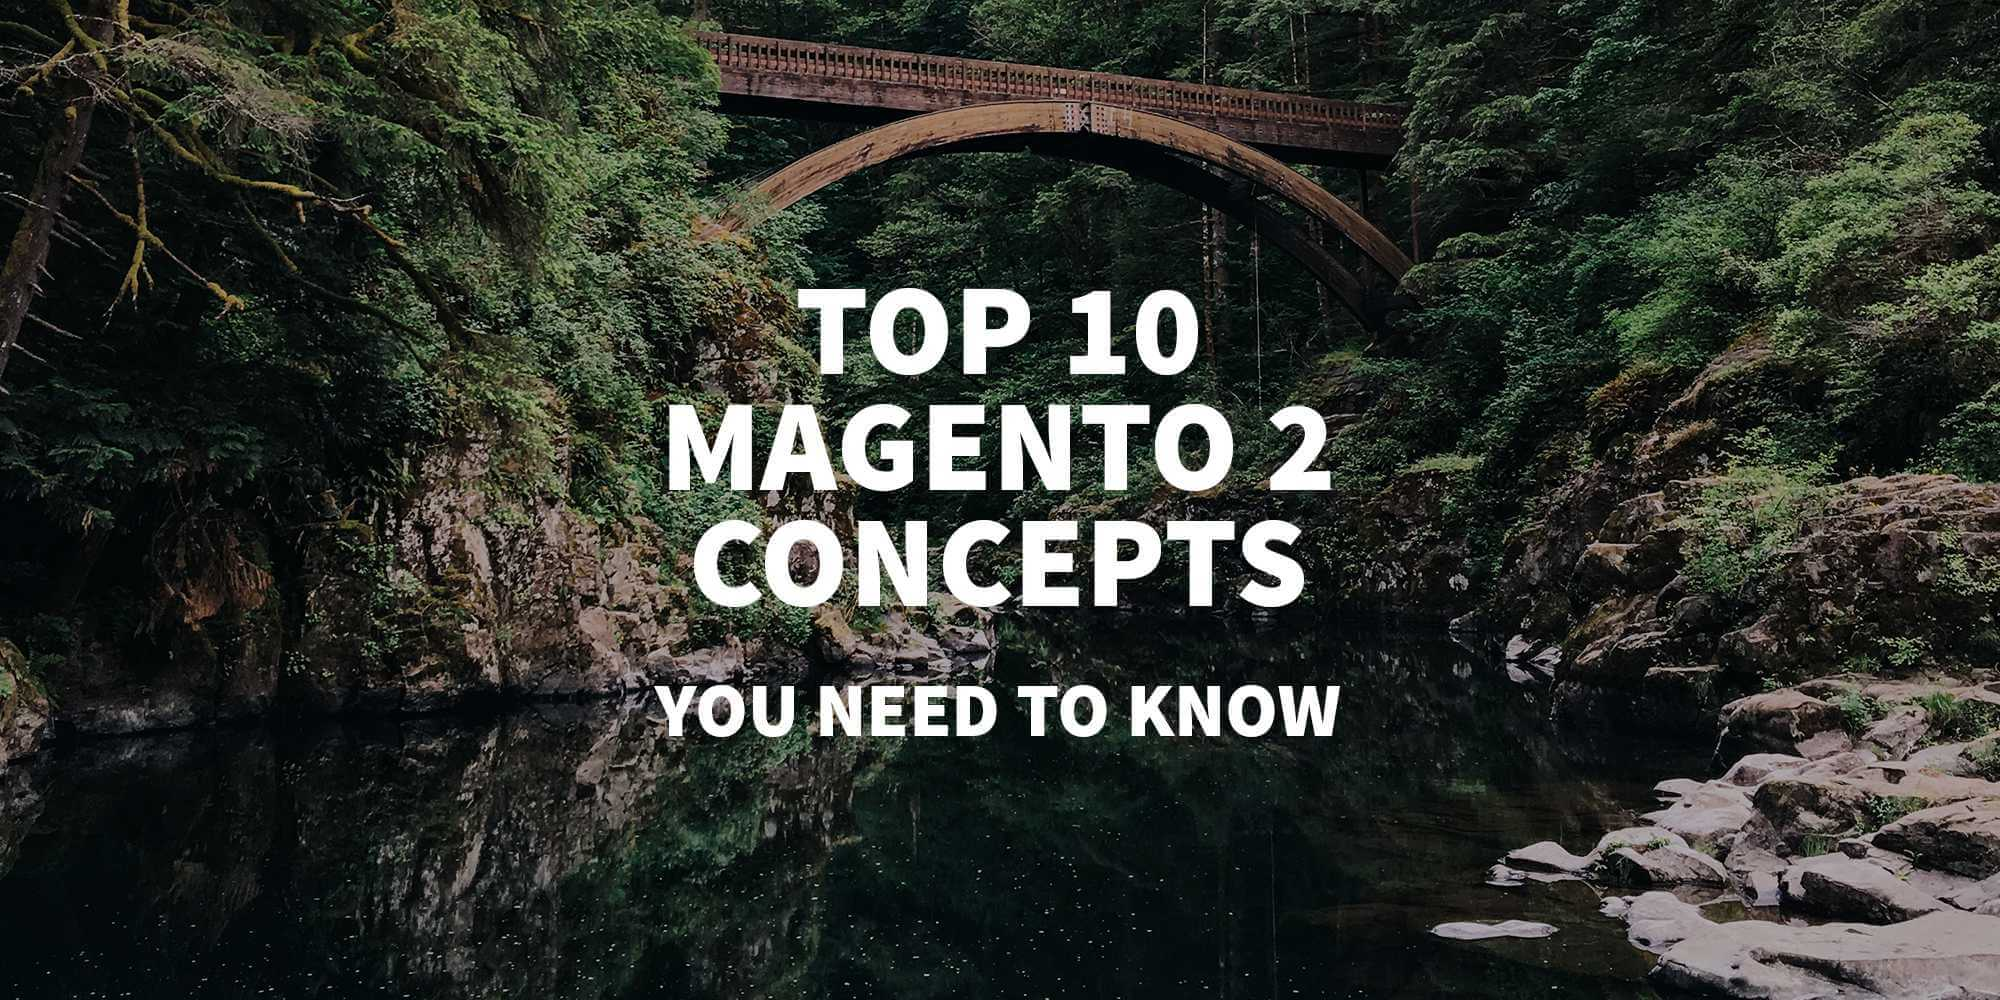 The Top 10 Magento 2 Concepts You Need to Know - Classy Llama